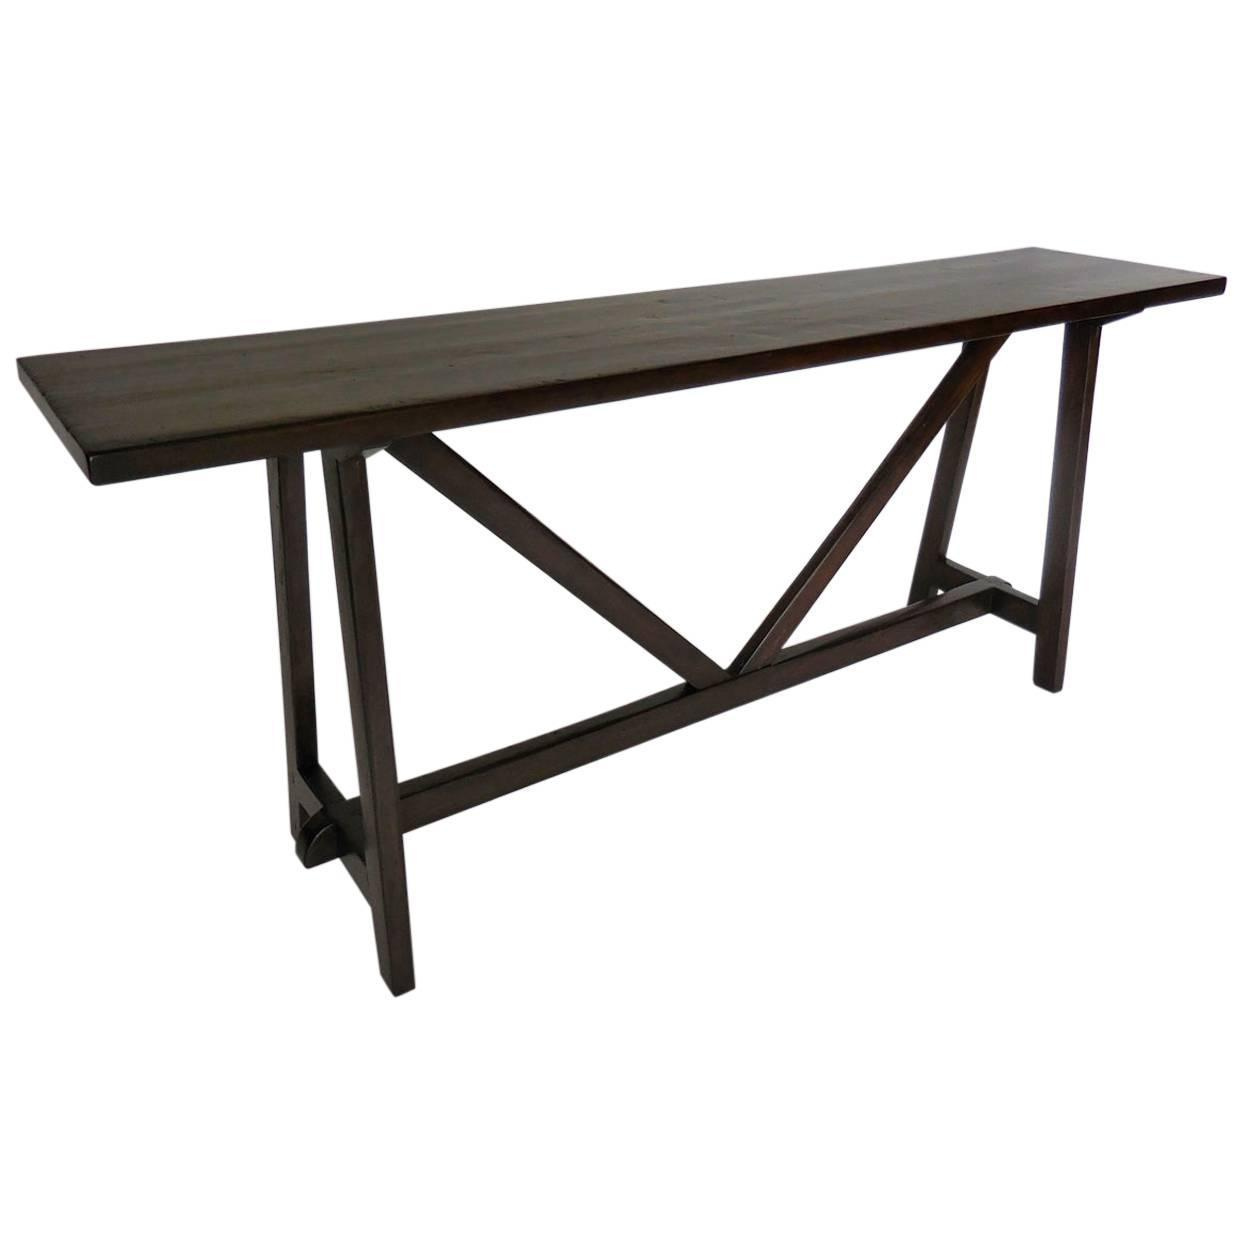 Rustic Sofa Tables For Sale: Rustic Modern Console Table For Sale At 1stdibs